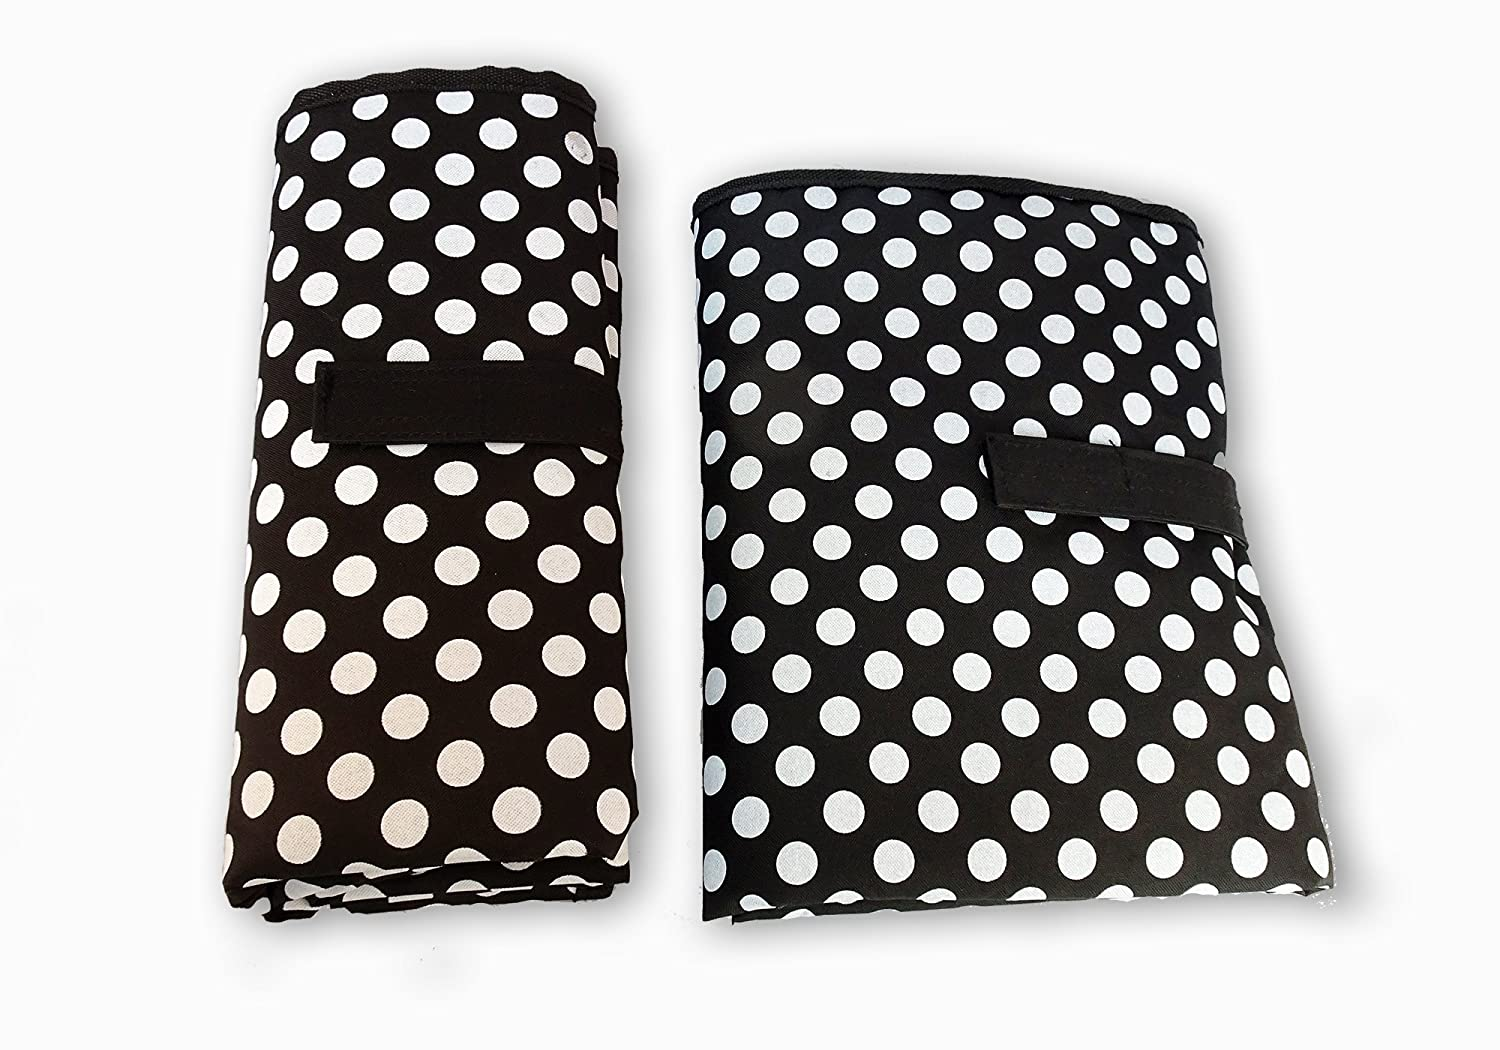 Waterproof Baby Nappy Changing Mat - One Hand Fold Grab & Go, Easy to Use, Large, Portable, Padded, Wipe Clean, On The Go Travel Change Station Pad (Black with White Dots) by Contented Infant ® 5060488380112